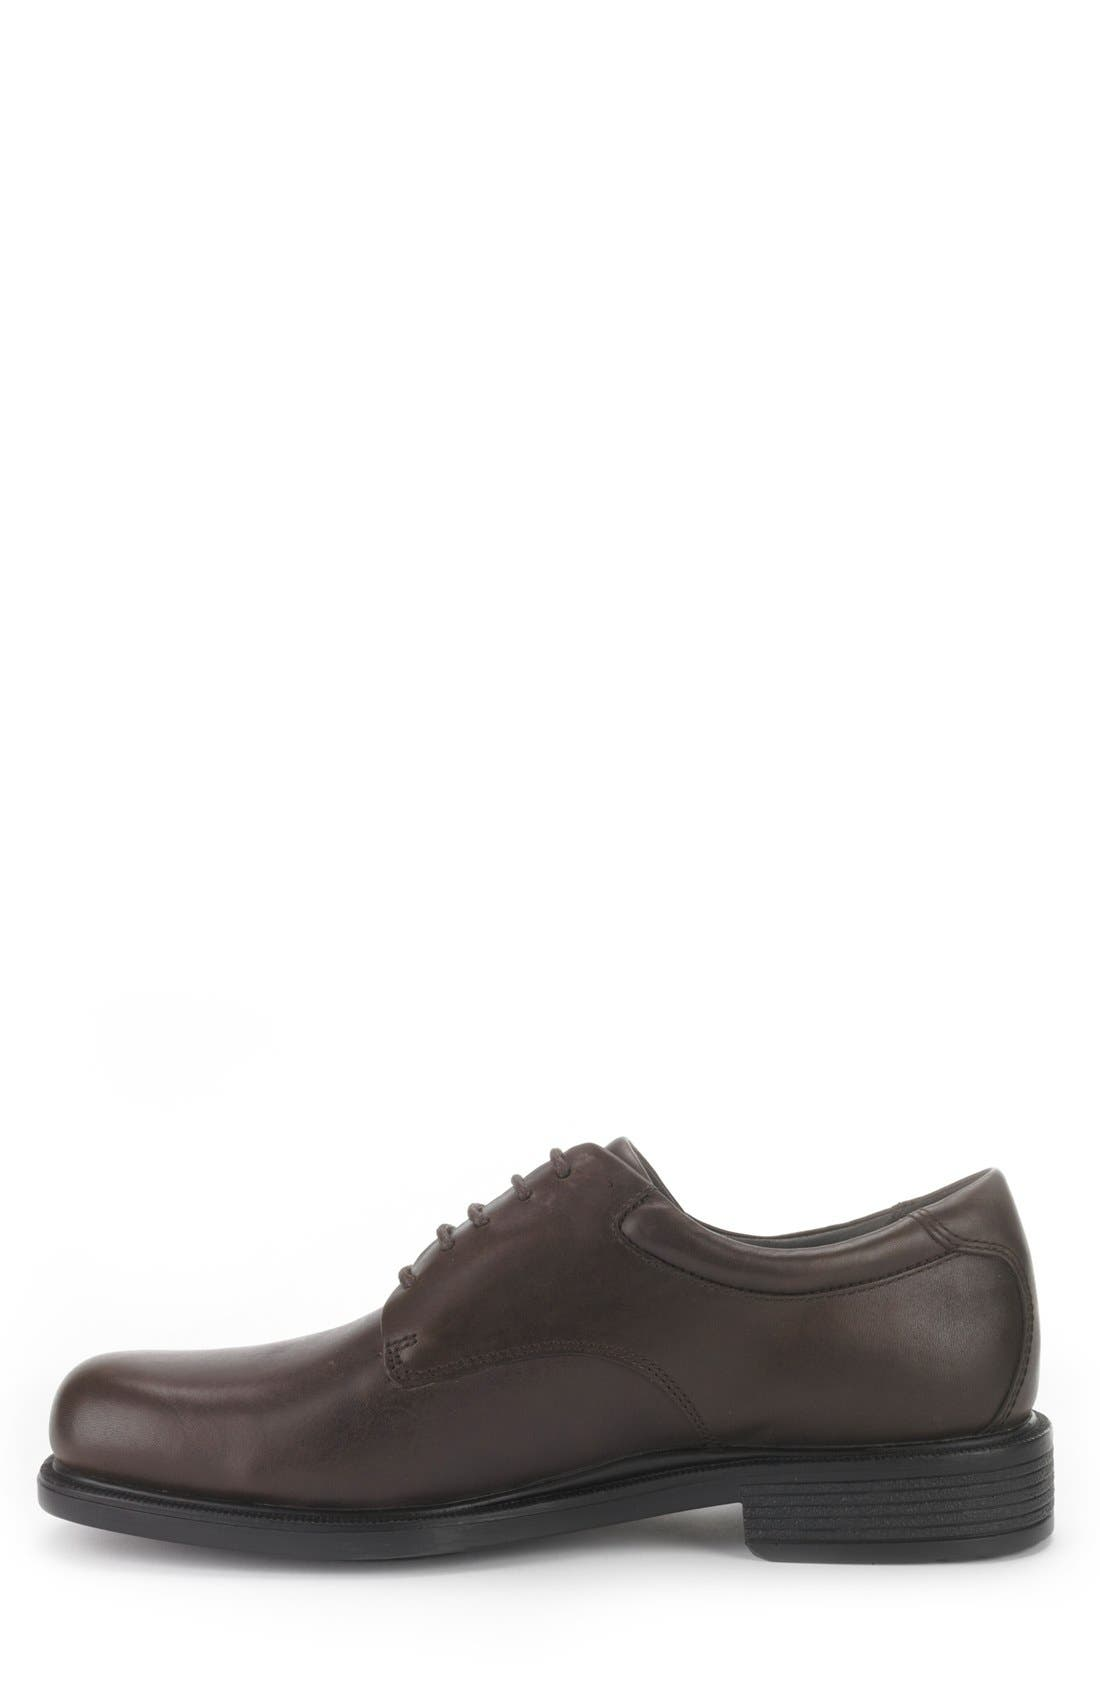 'Margin' Oxford,                             Alternate thumbnail 6, color,                             CHOCOLATE LEATHER